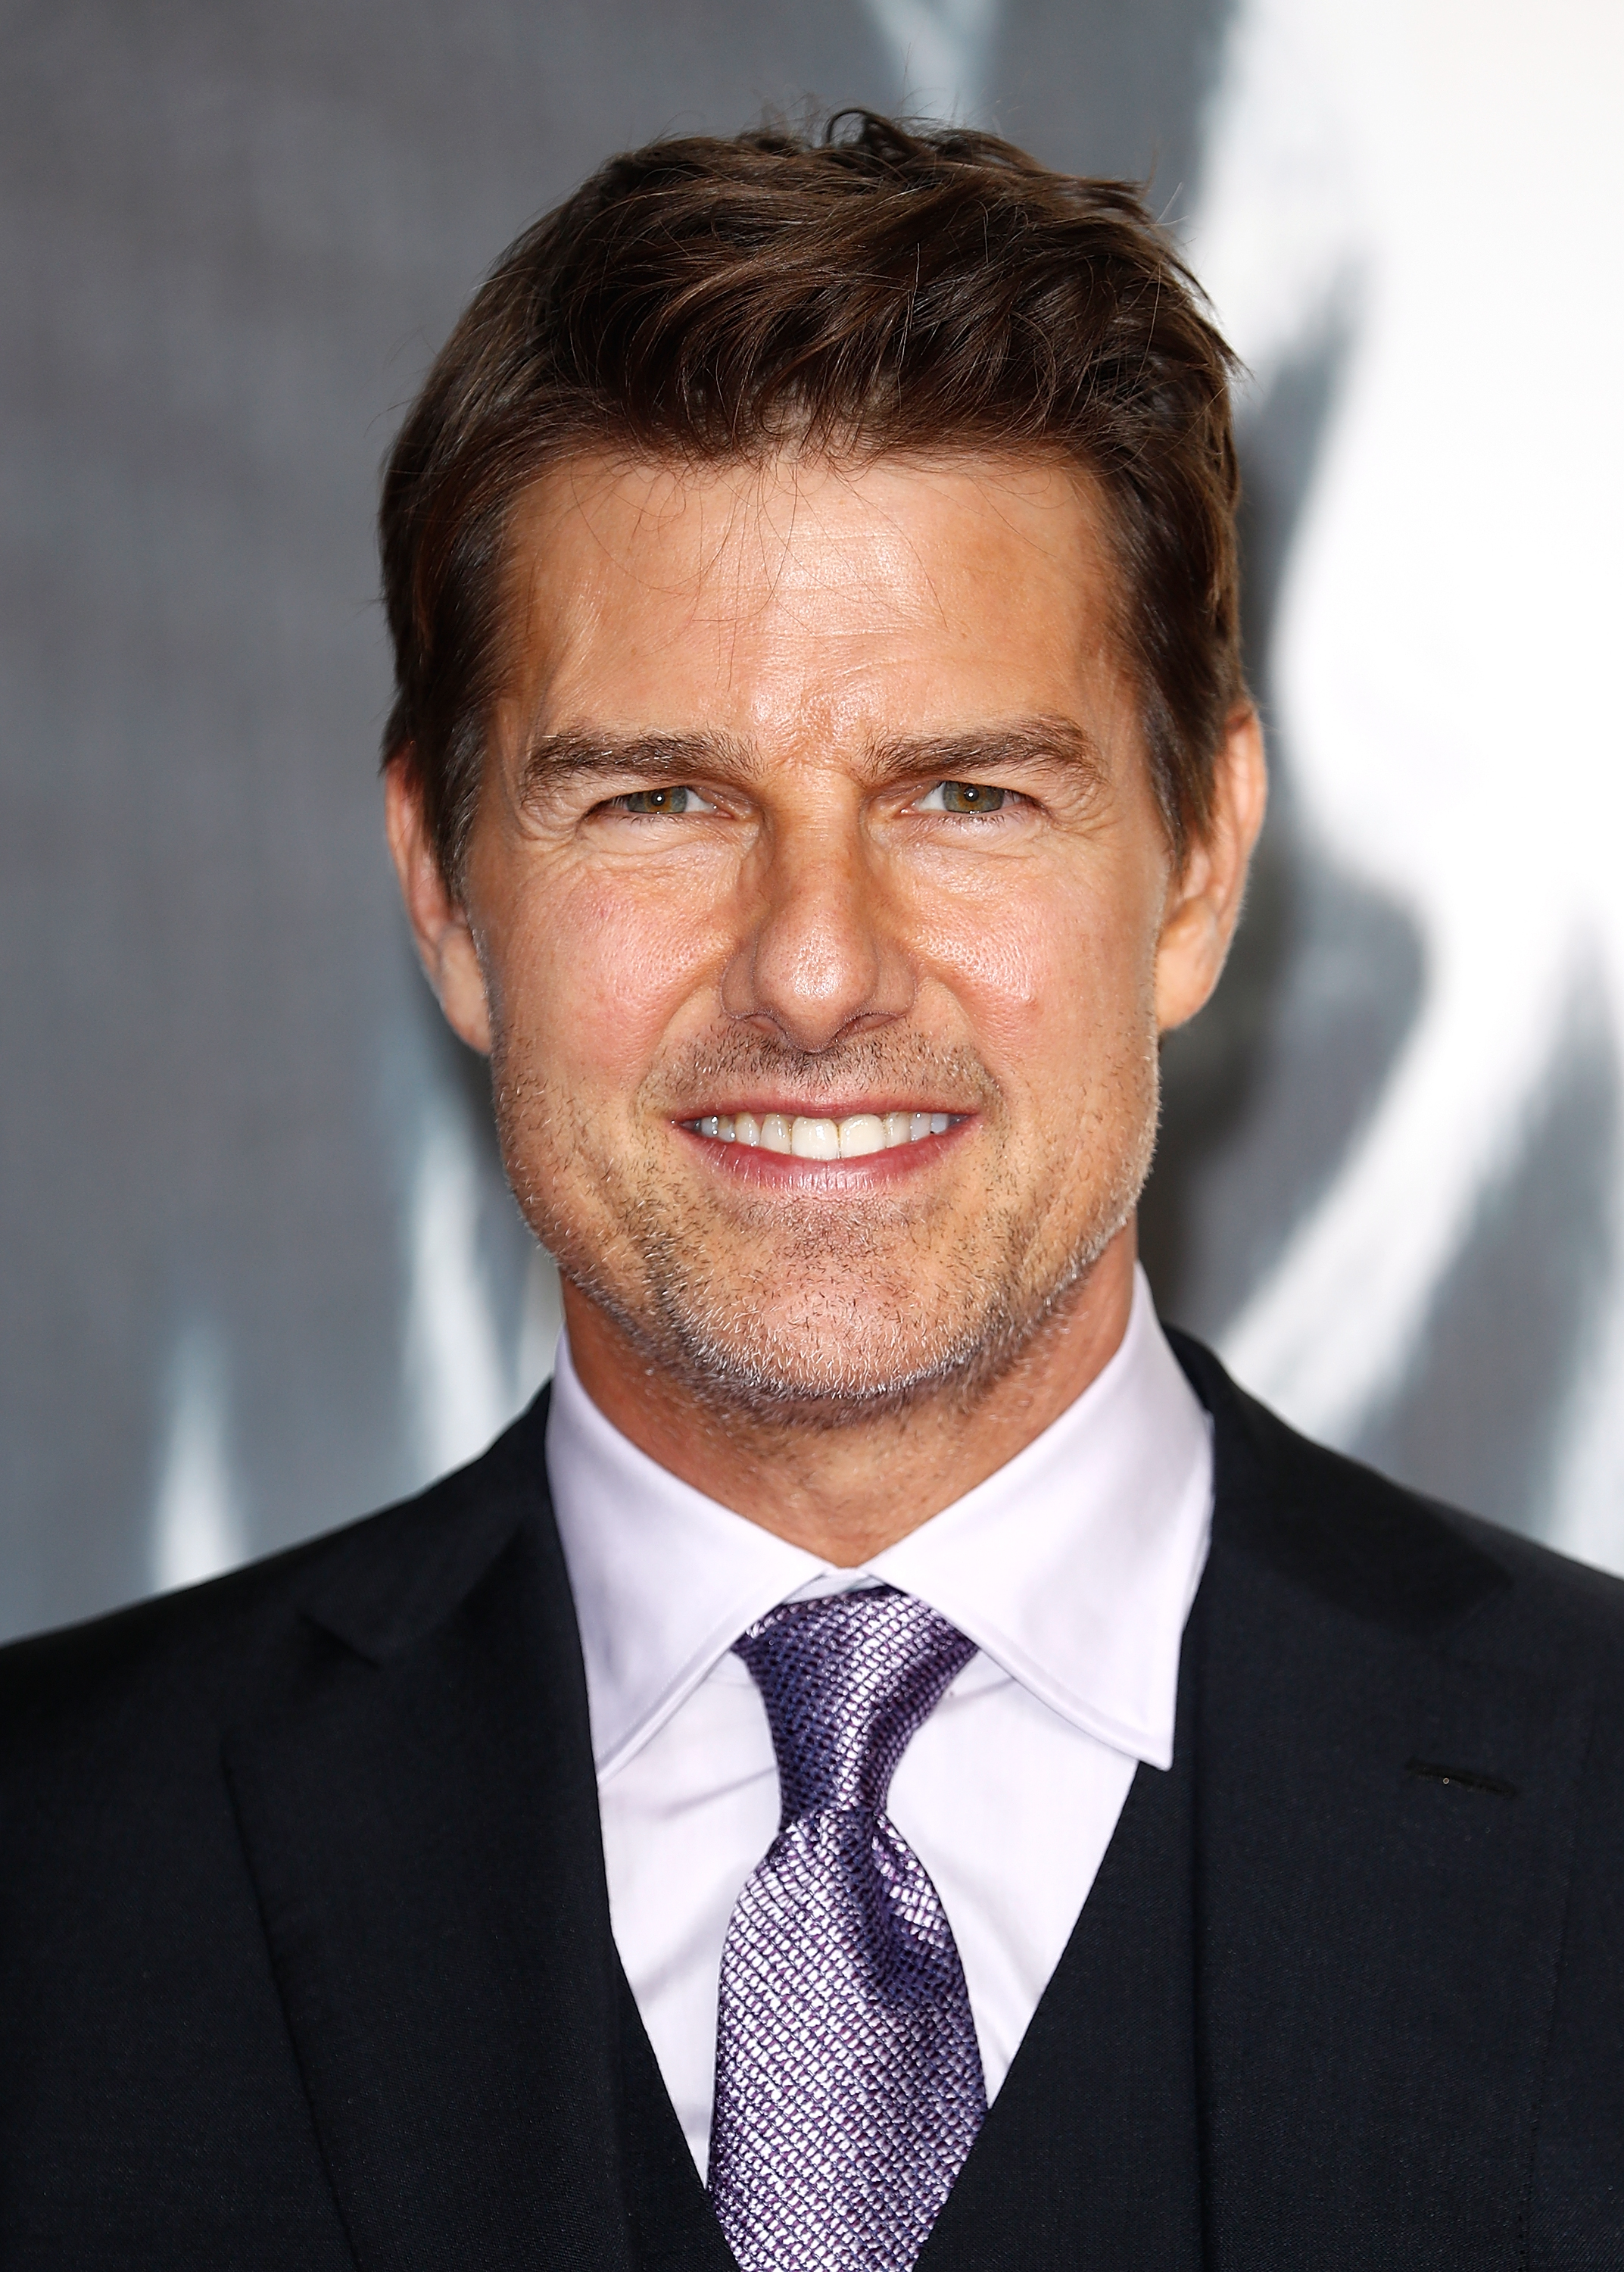 Tom Cruise (Source: Getty Images)